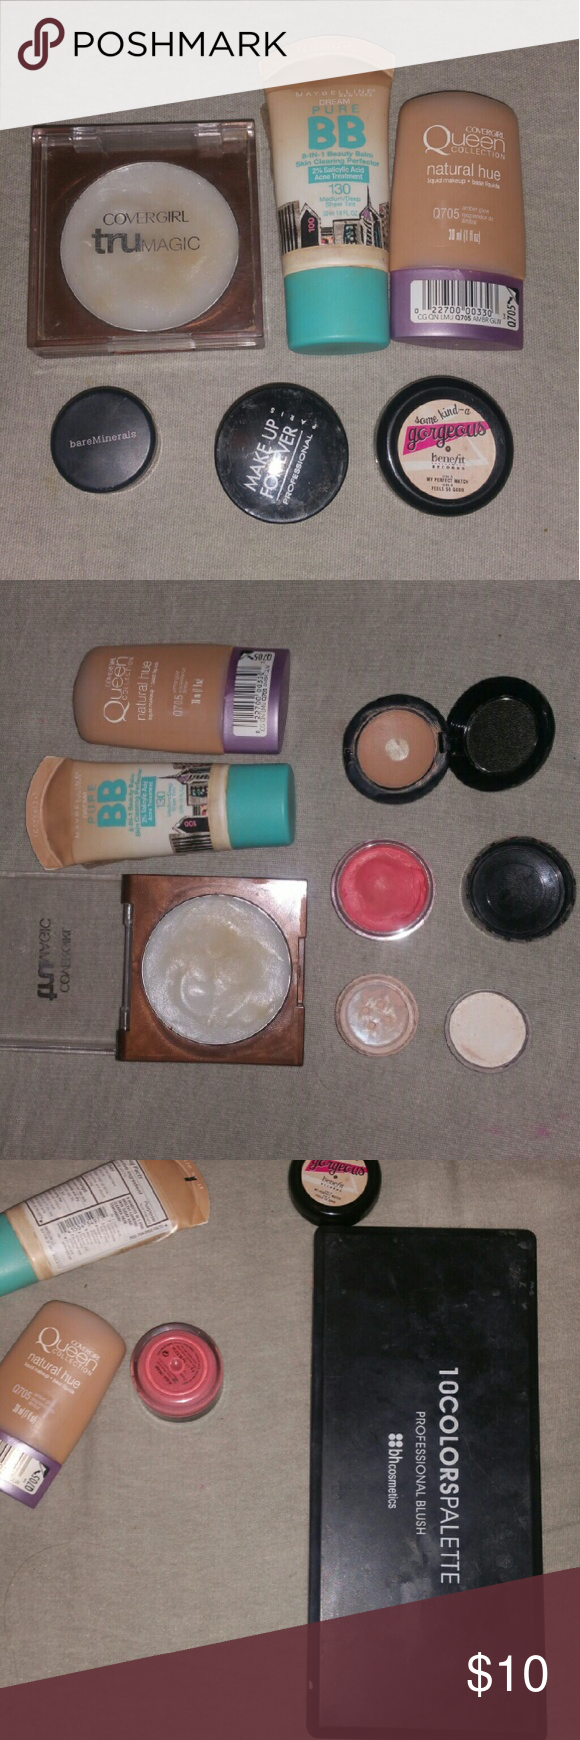 Bulk Face MakeUp Clean Out I'm cleaning out my make up